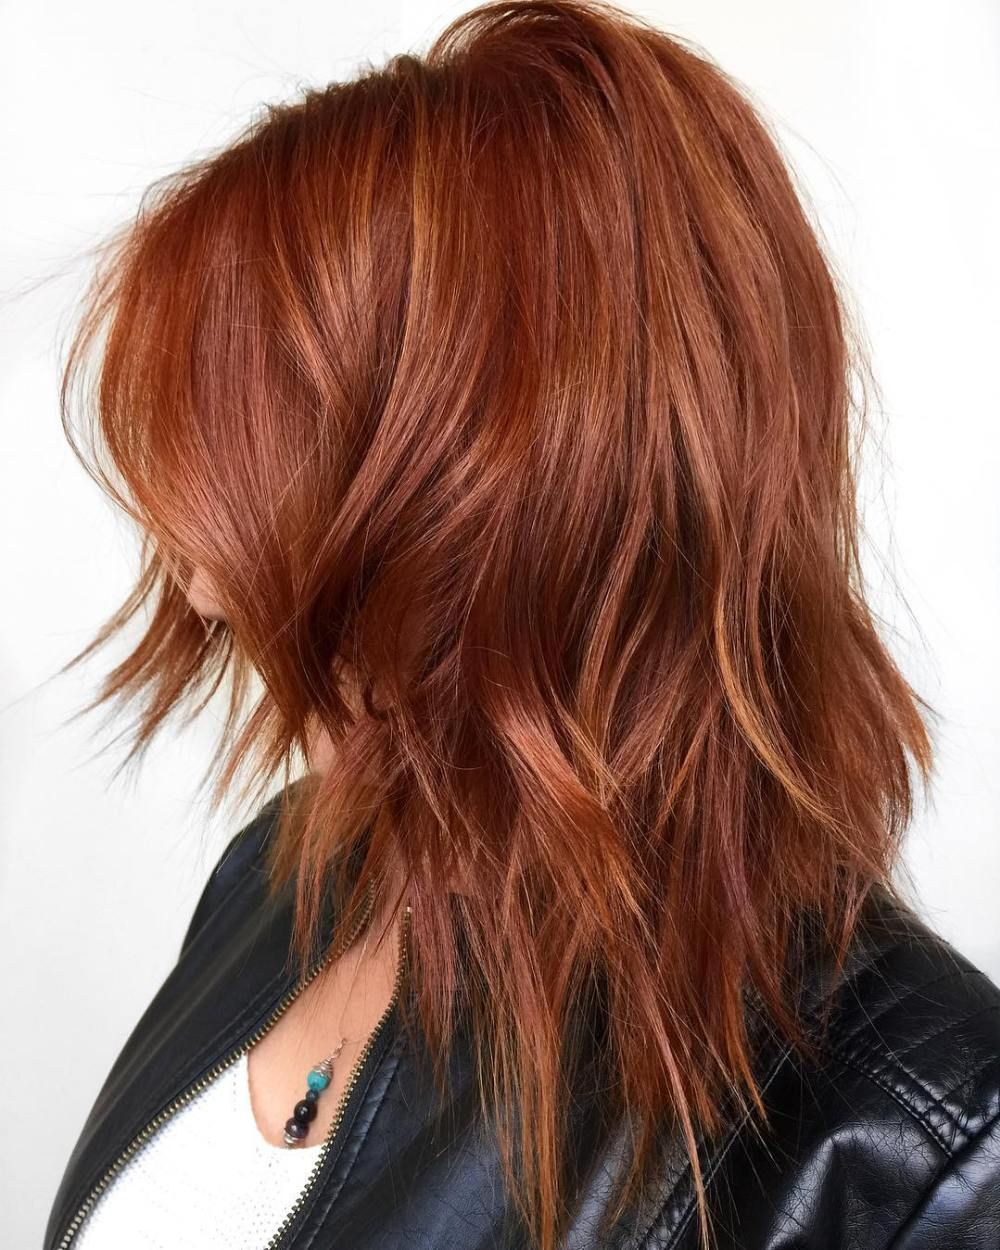 Auburn Hair Colors to Emphasize Your Individuality  Copper hair